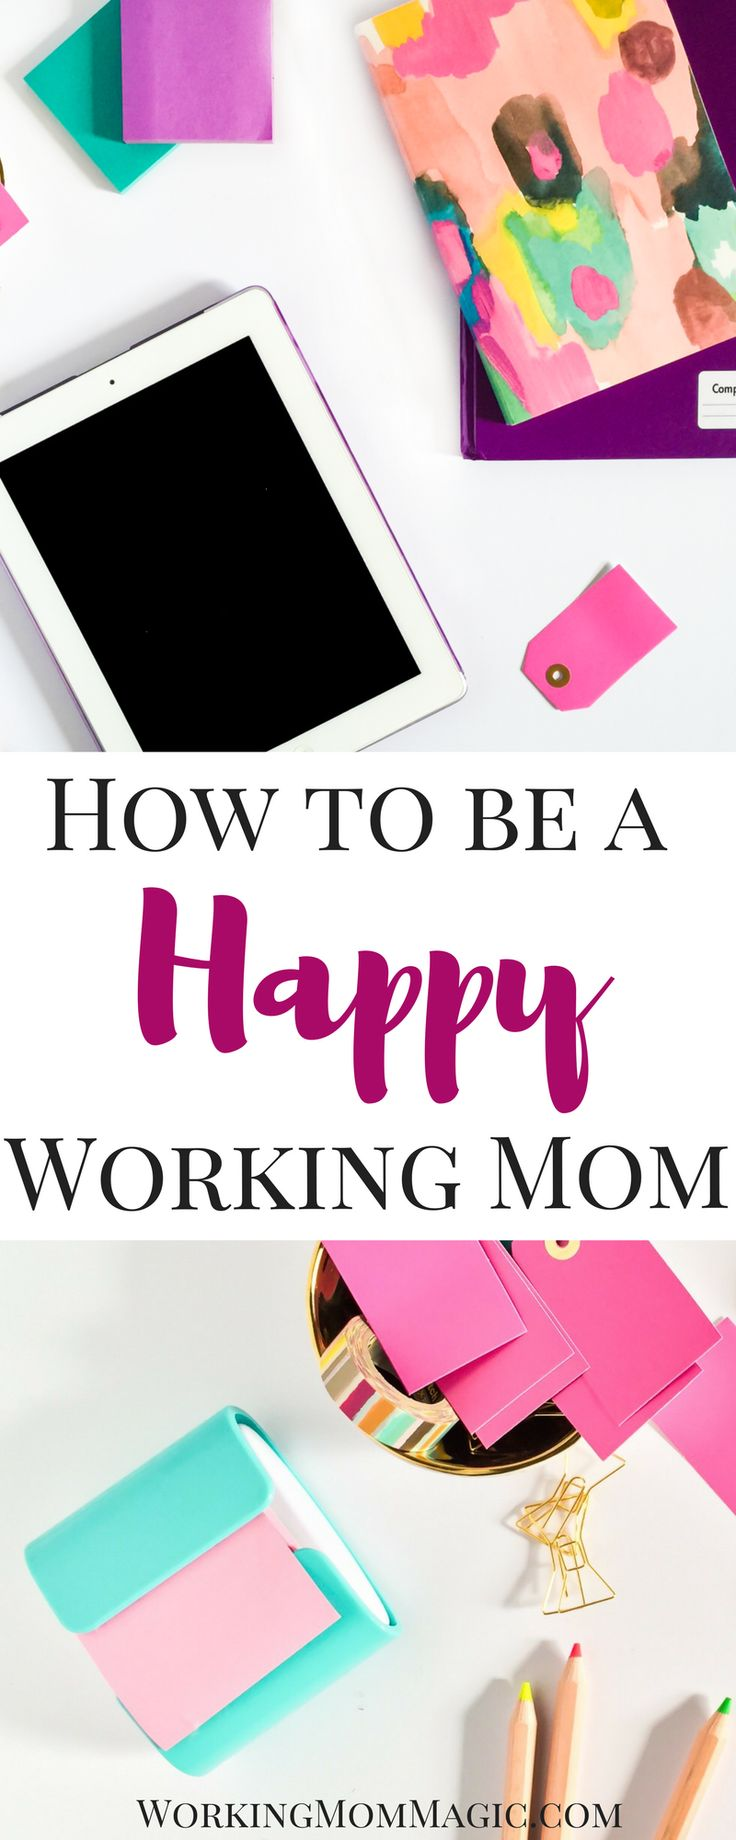 While working moms may be becoming more common, that doesn't mean it is getting easier. Mom guilt is very real. However, after nearly 9 years of being a working mom, I do have some tips to help you hold onto your happy!